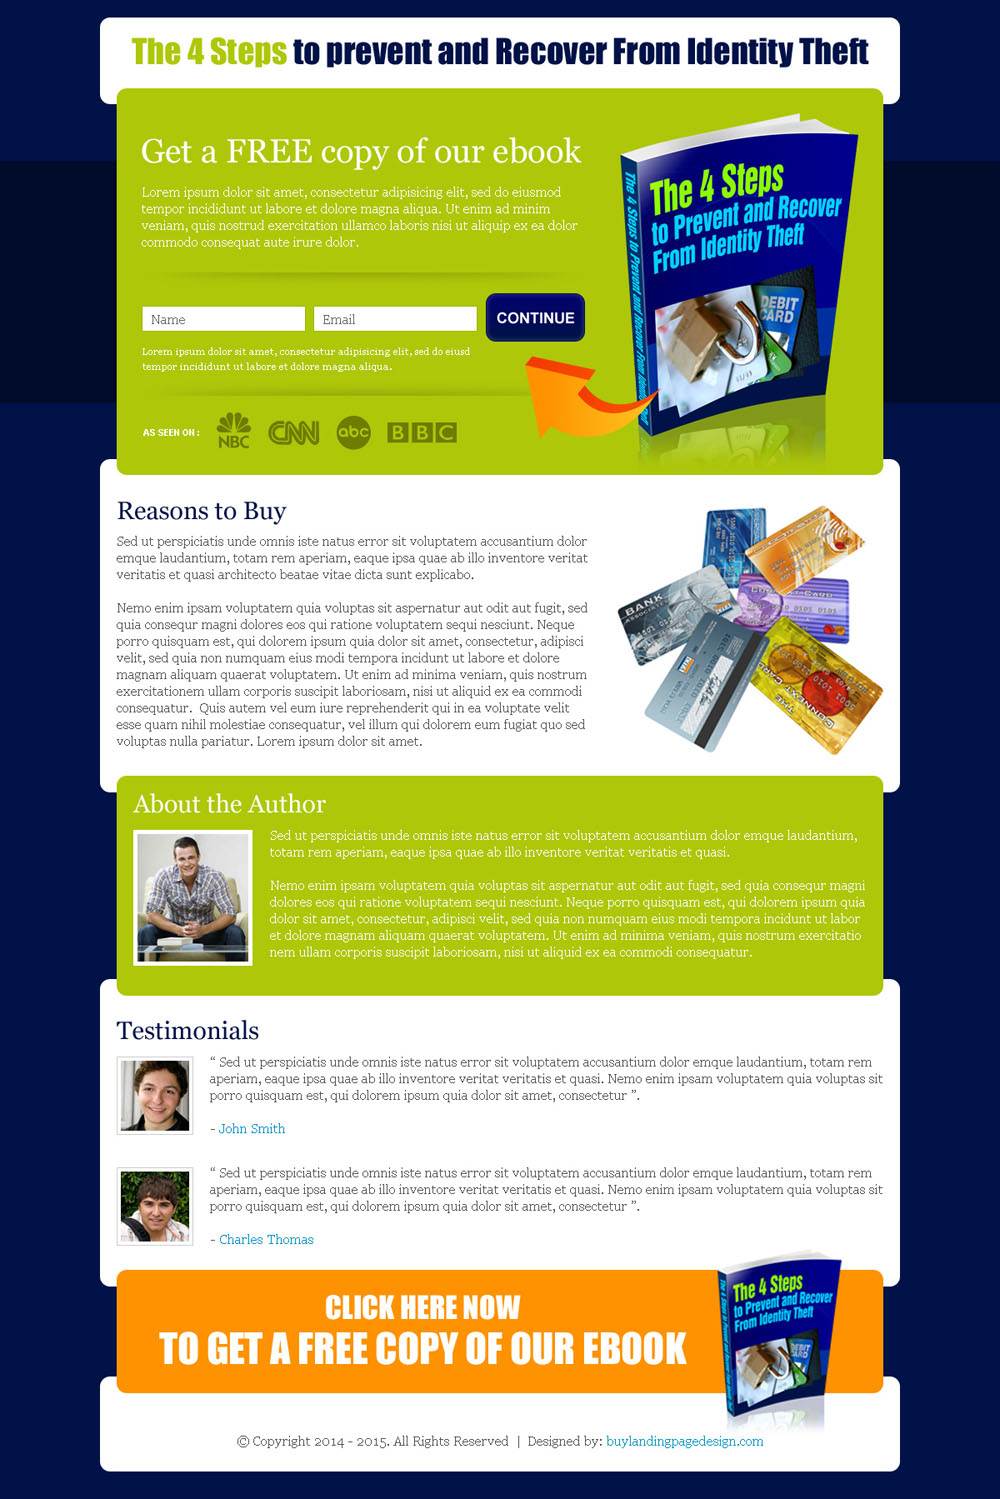 business-ebook-landing-page-design-templates-to-boost-sales-of-your-ebook-online-010